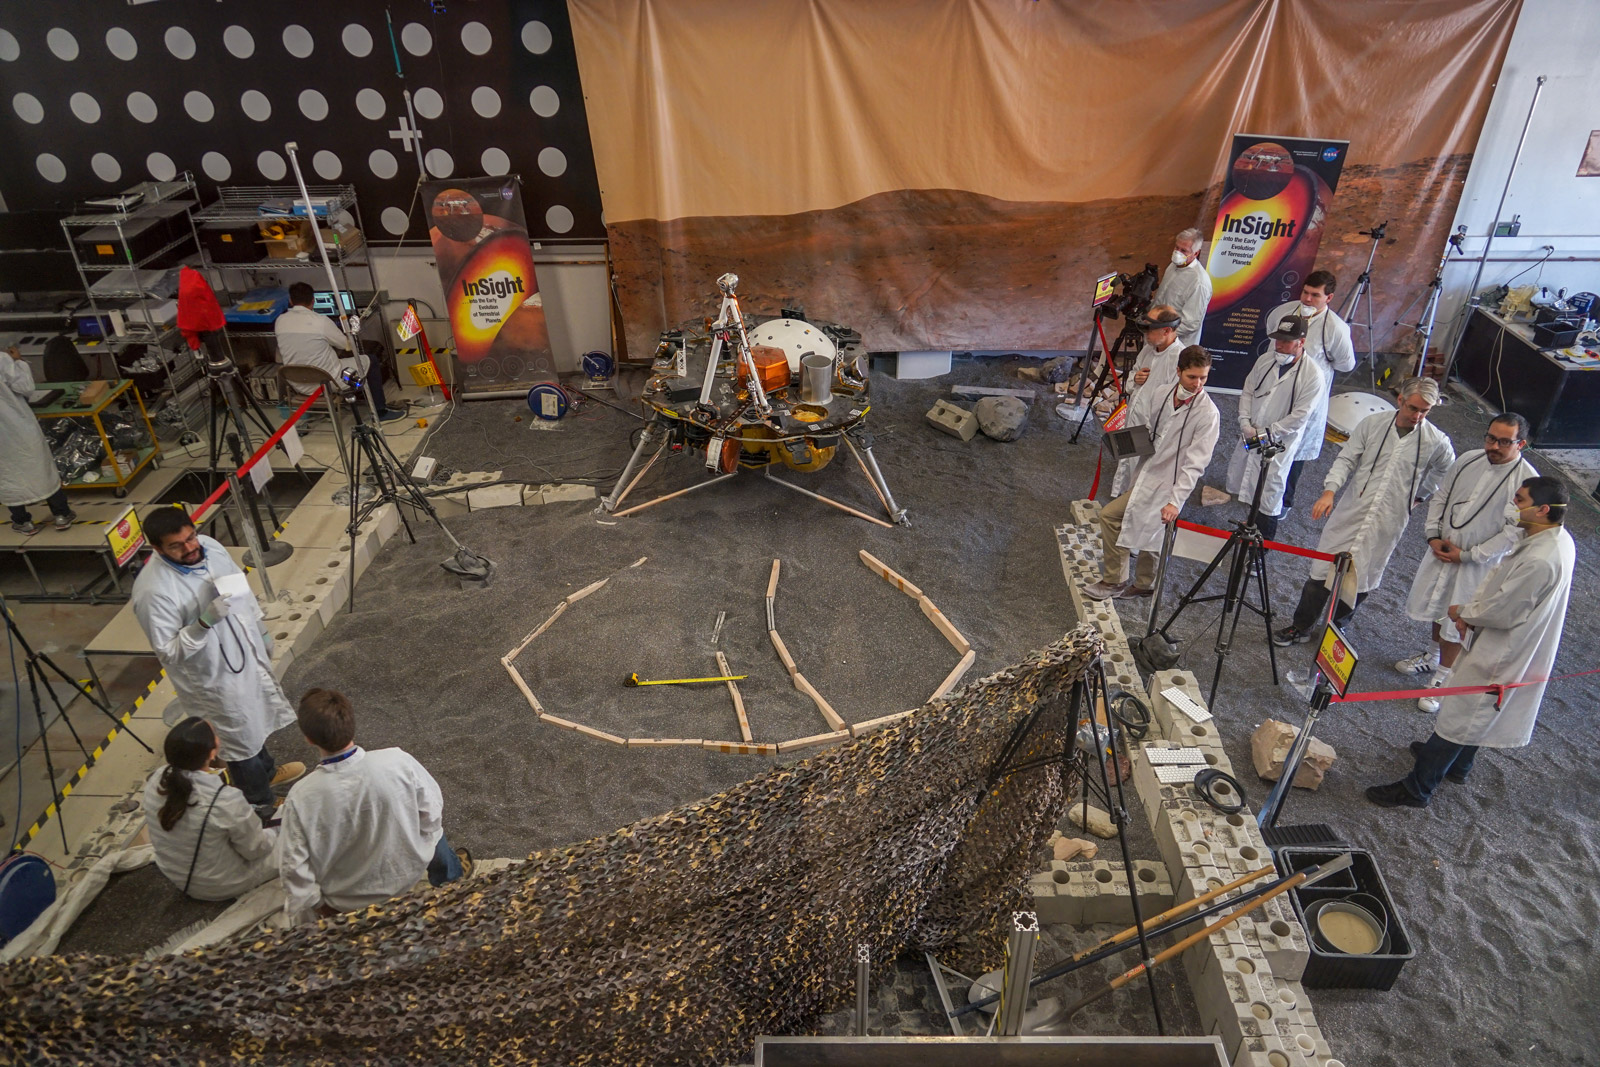 Engineers in Pasadena, California, sculpt a gravel-like material to mimic the terrain in front of NASA's InSight lander on Mars. Recreating the exact conditions will allow them to practice setting down the lander's instruments here on Earth before it's done on Mars.